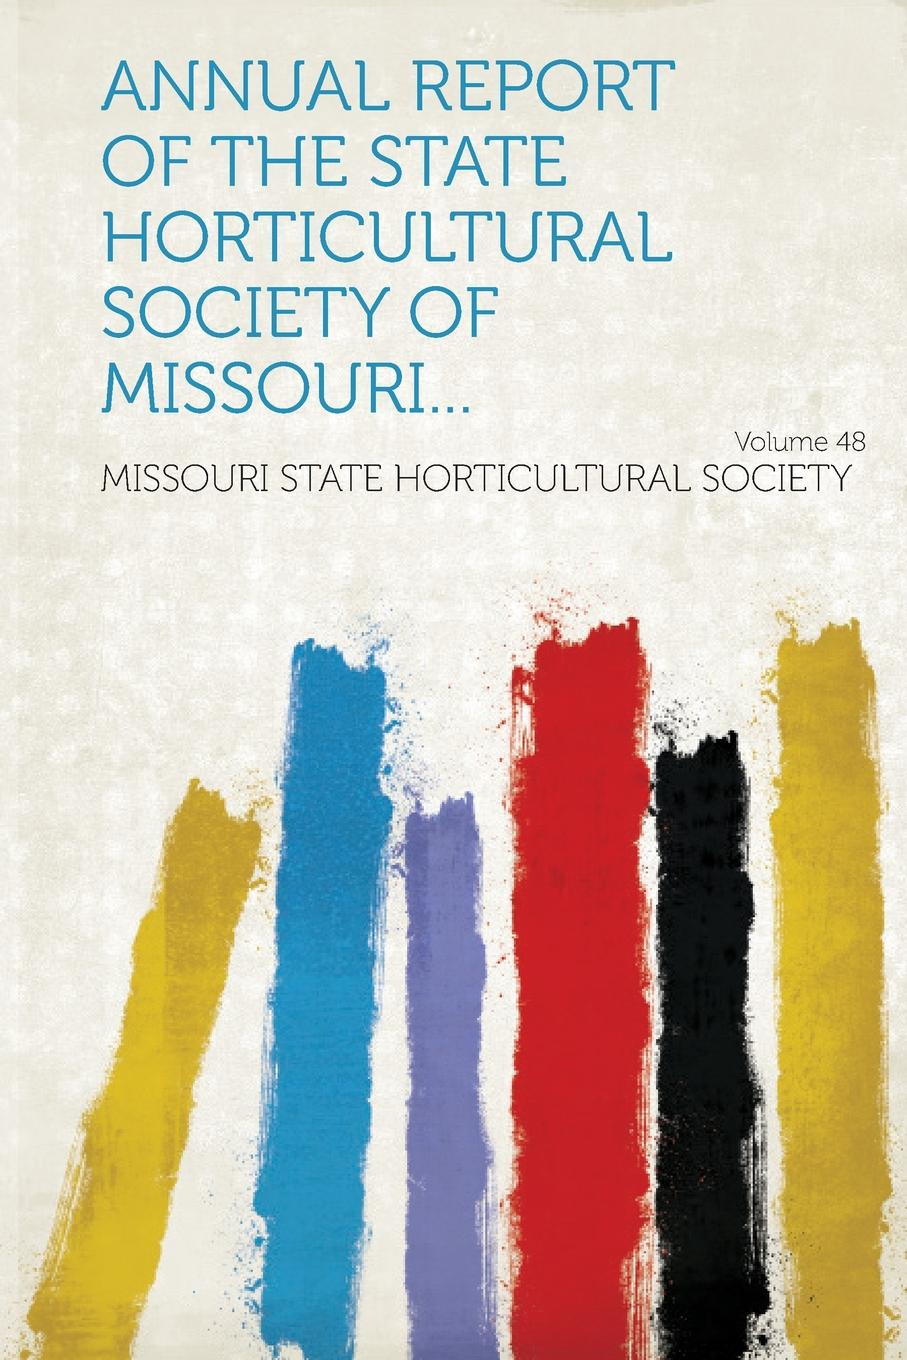 Missouri State Horticultural Society Annual report of the State Horticultural Society of Missouri... Volume 48